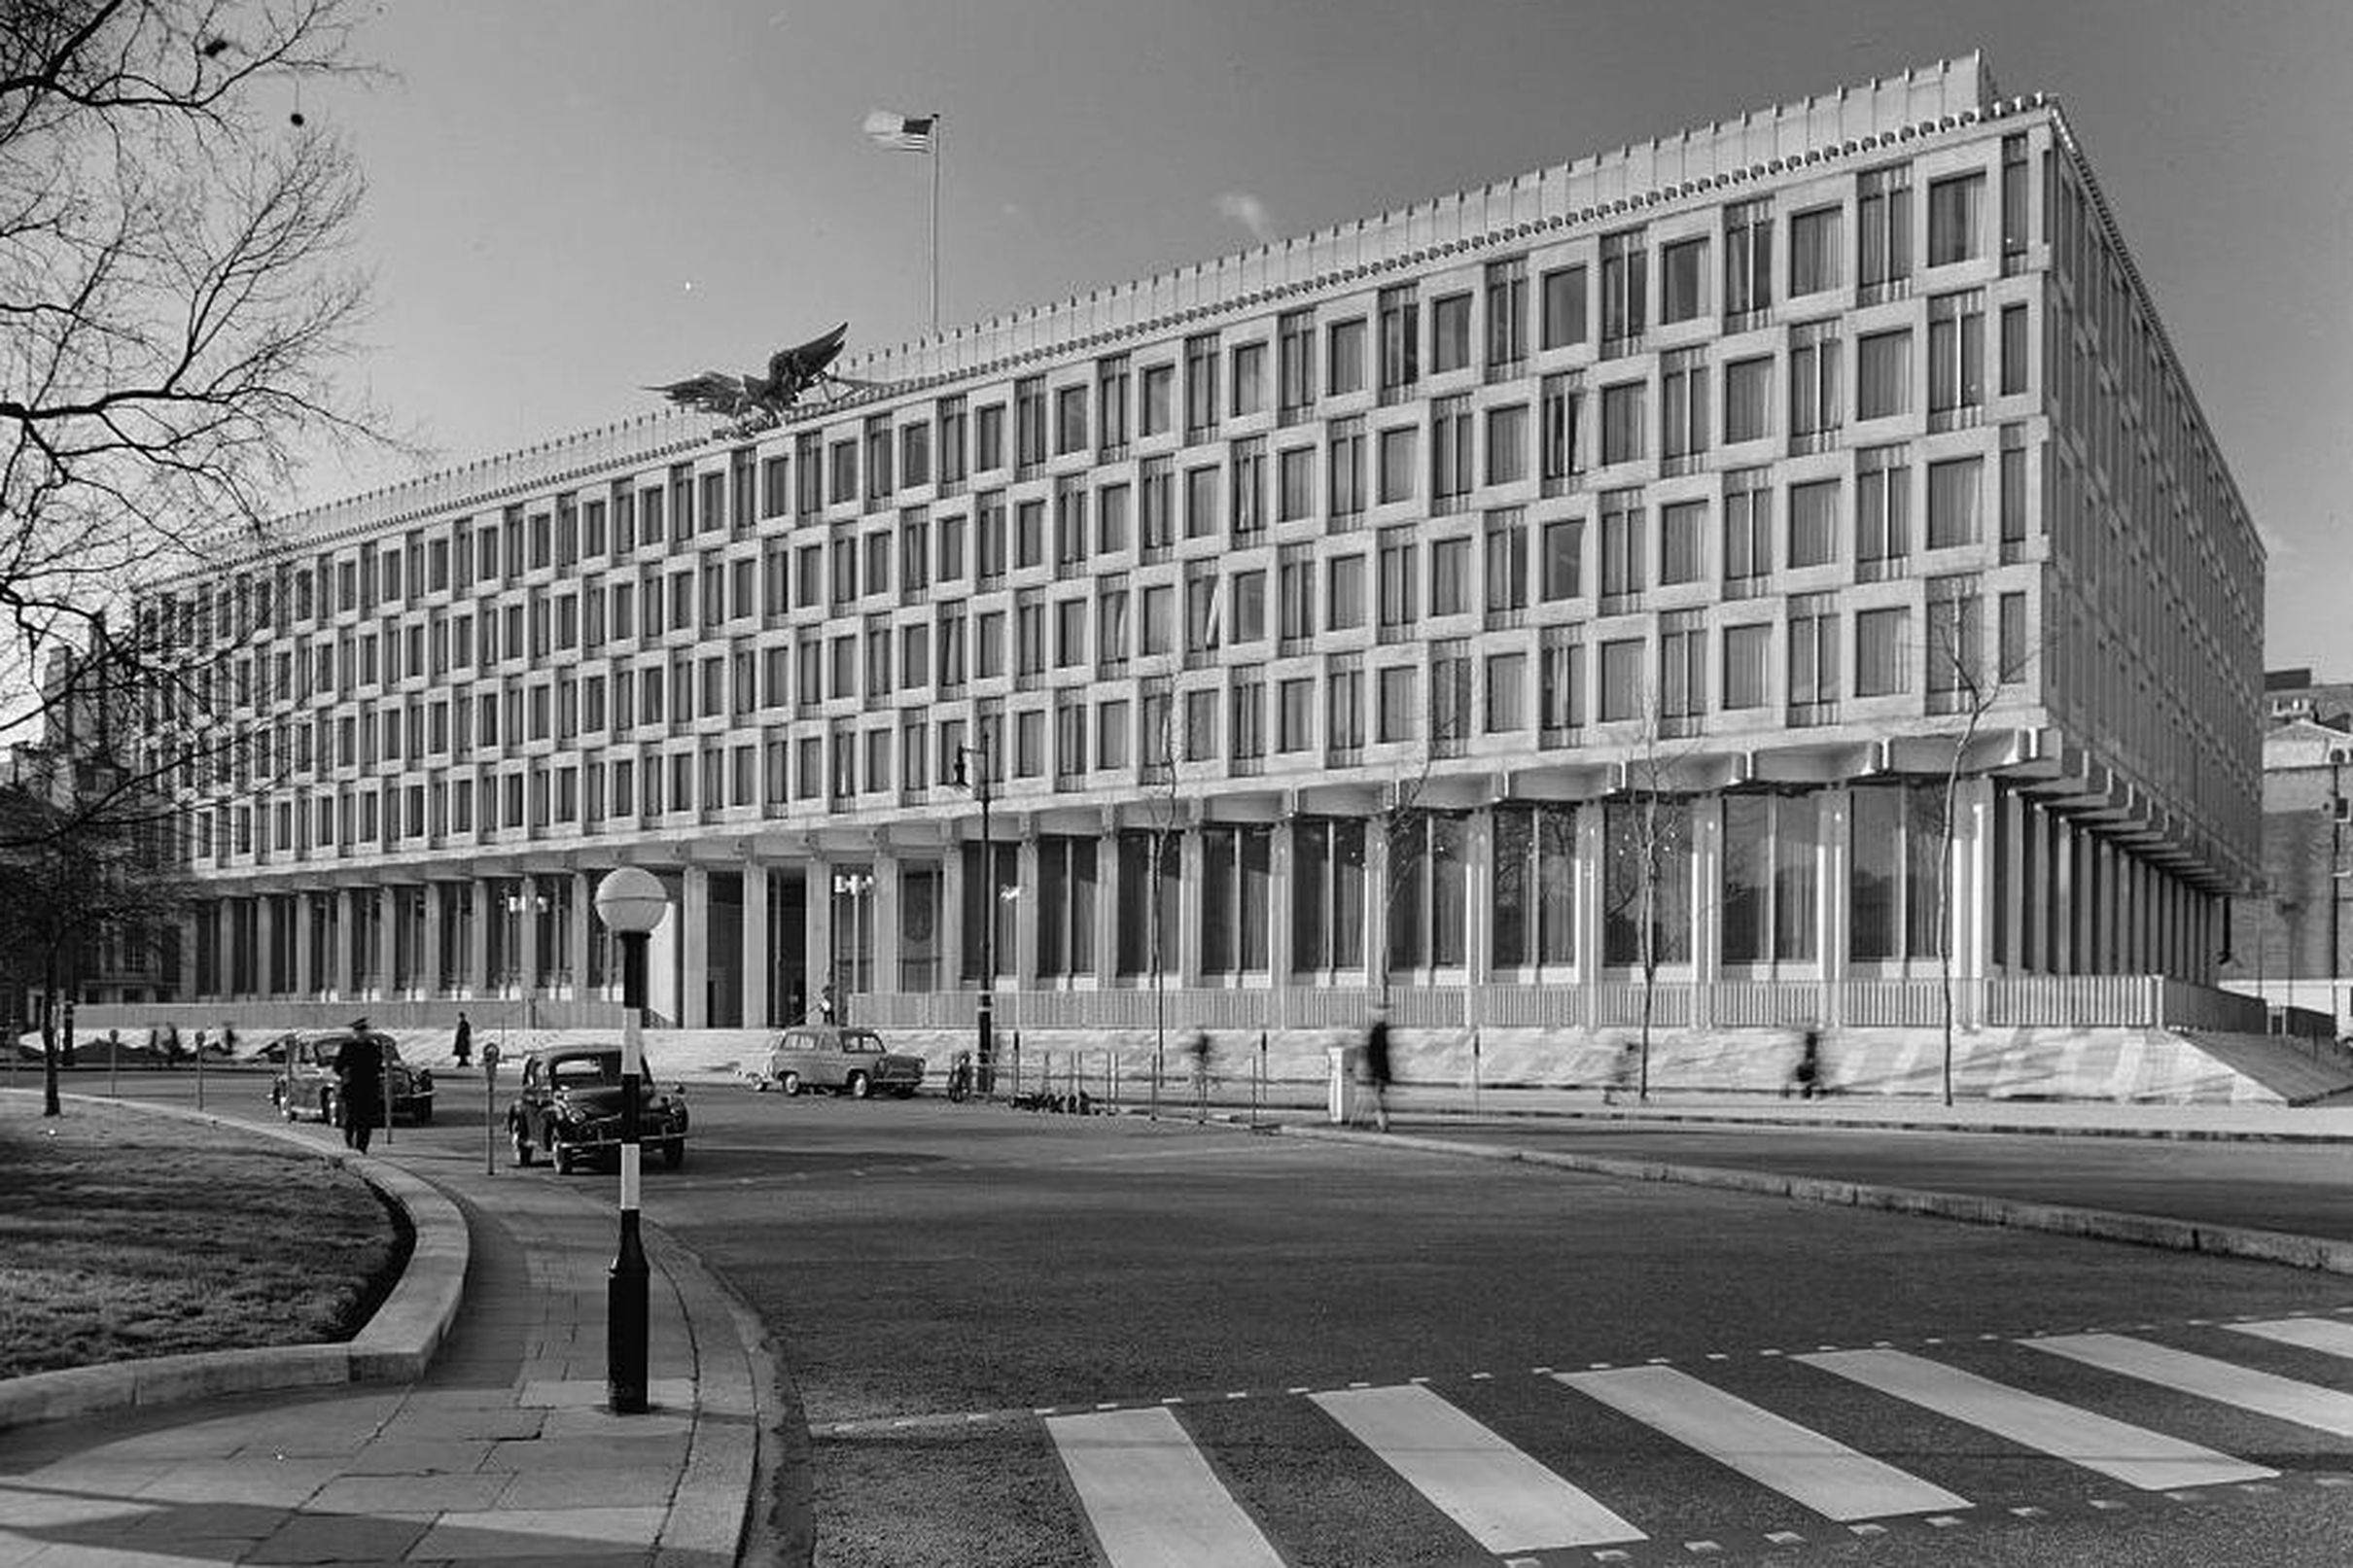 Step Inside An Eero Saarinen Designed U S Embassy In London Curbed Brutalist Architecture Eero Saarinen Architecture London Interior